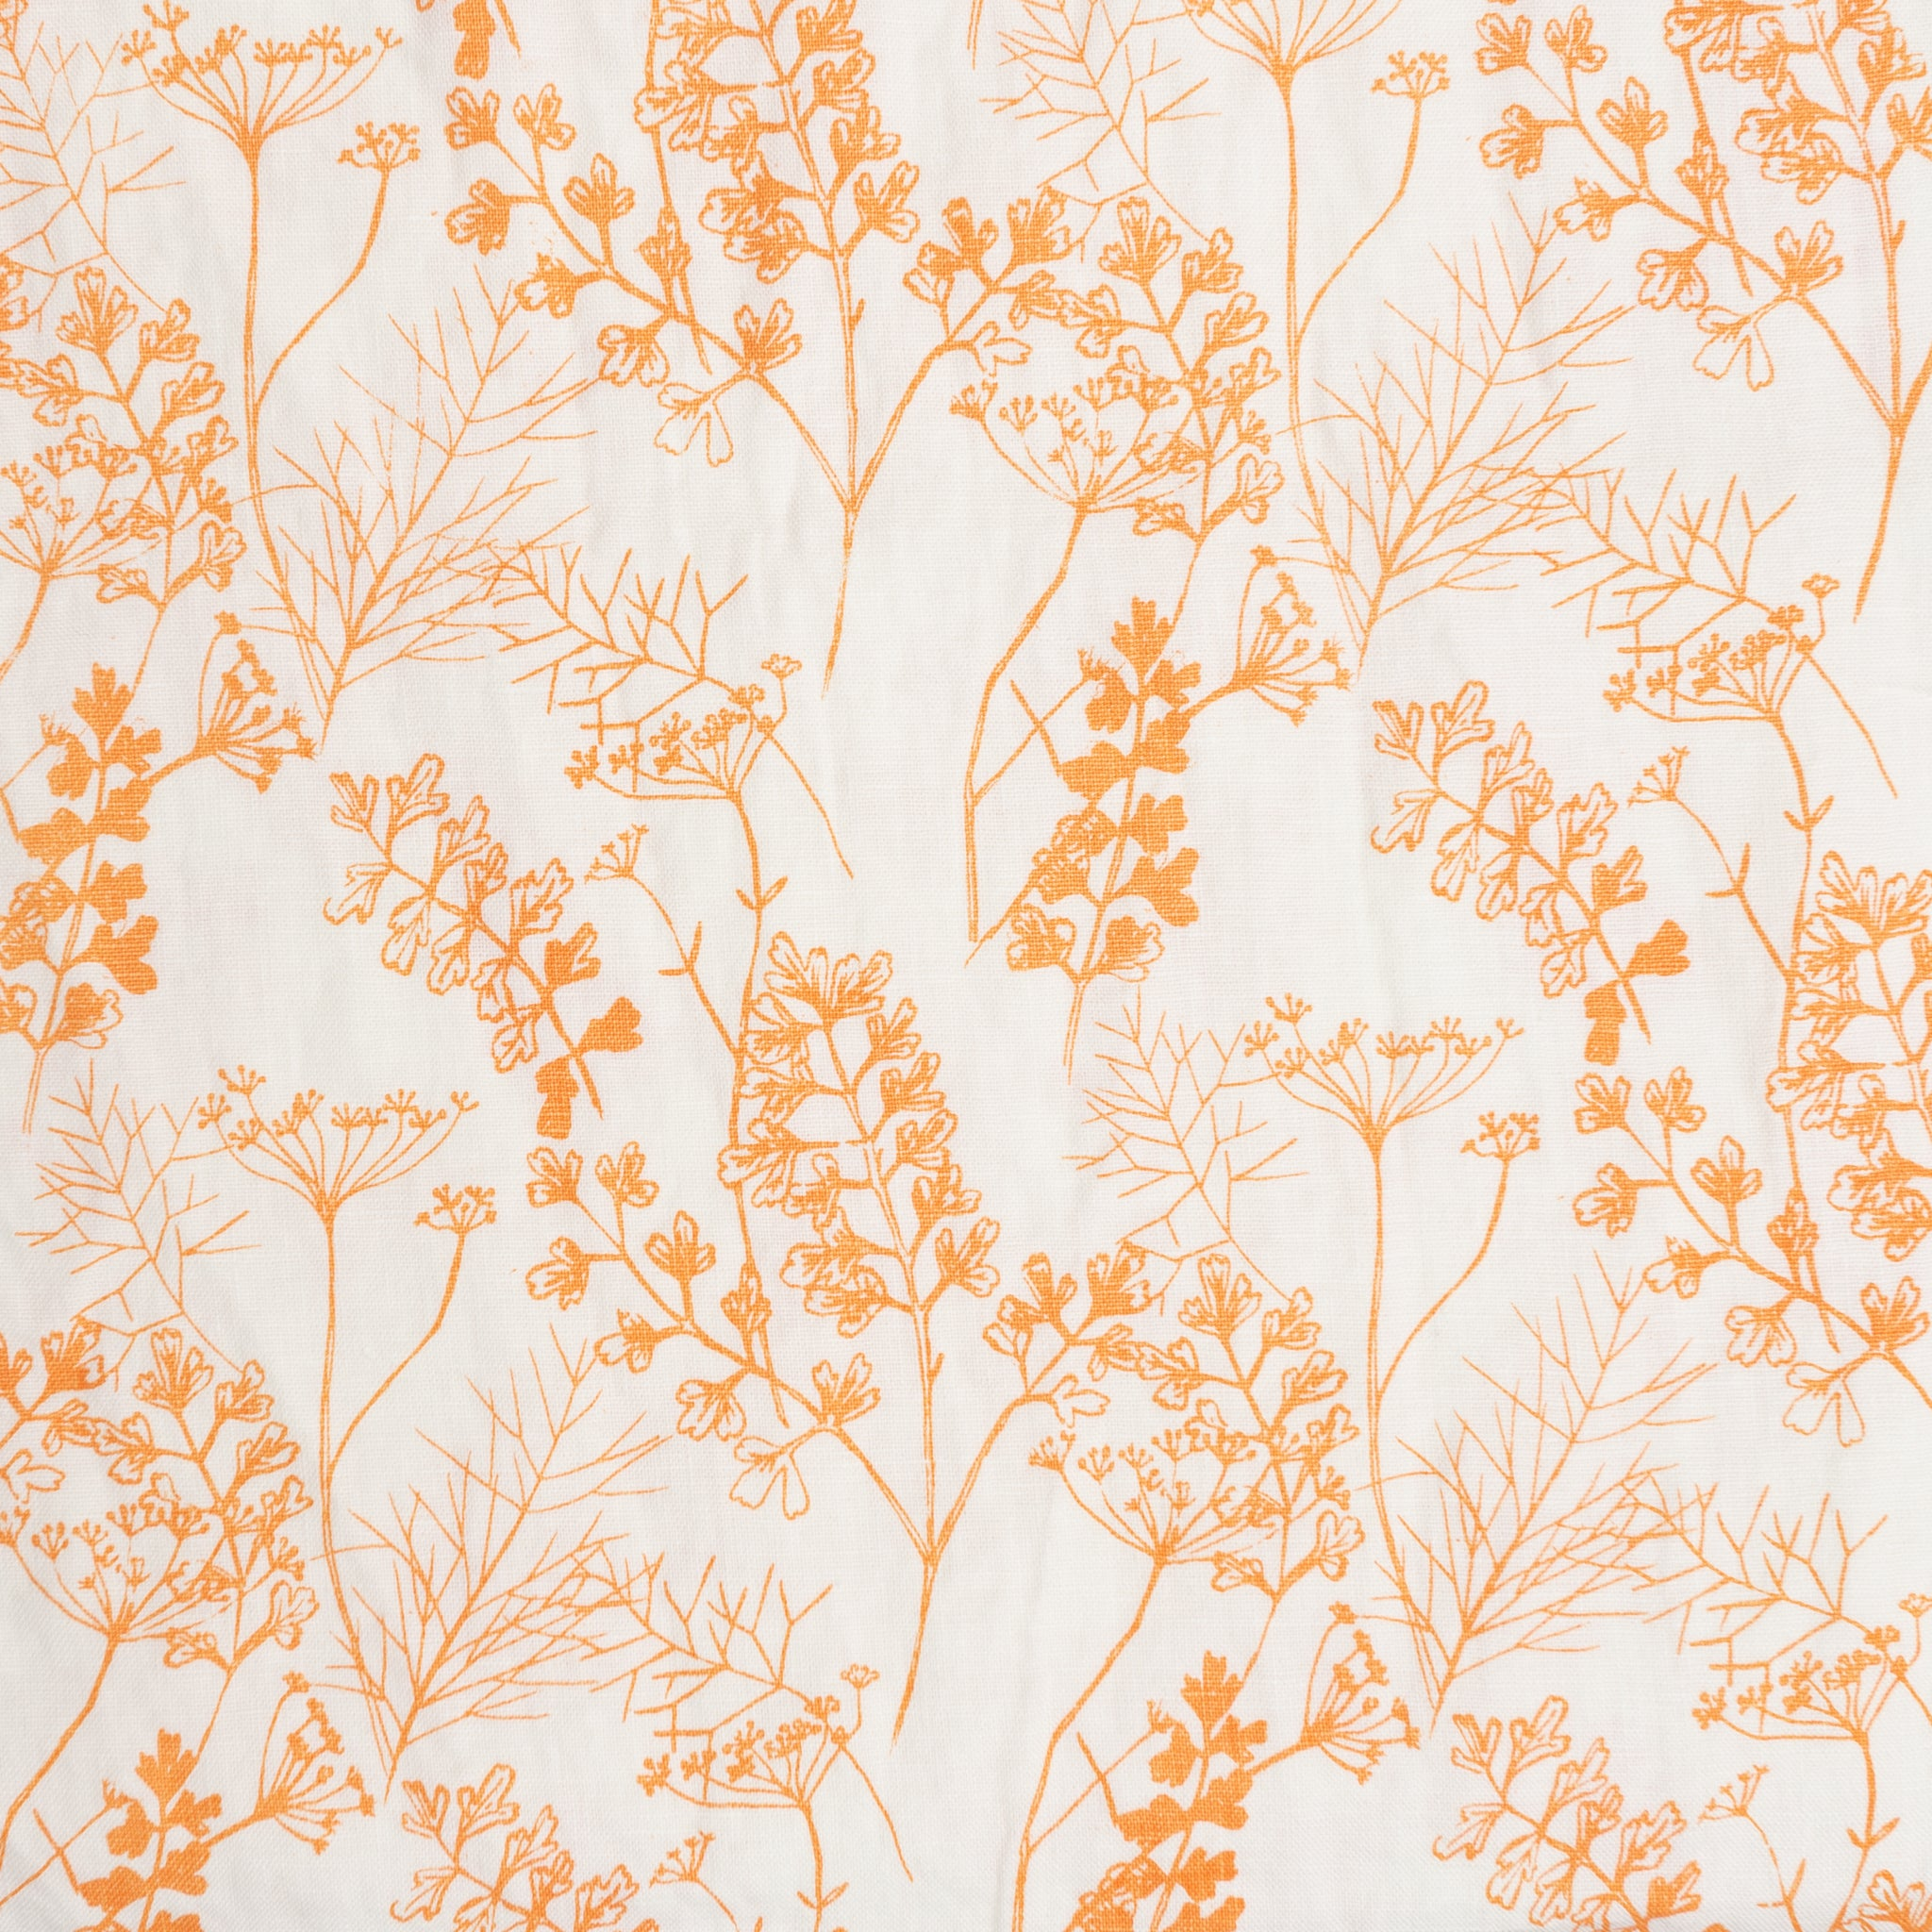 Parsley in Clementine - Linen